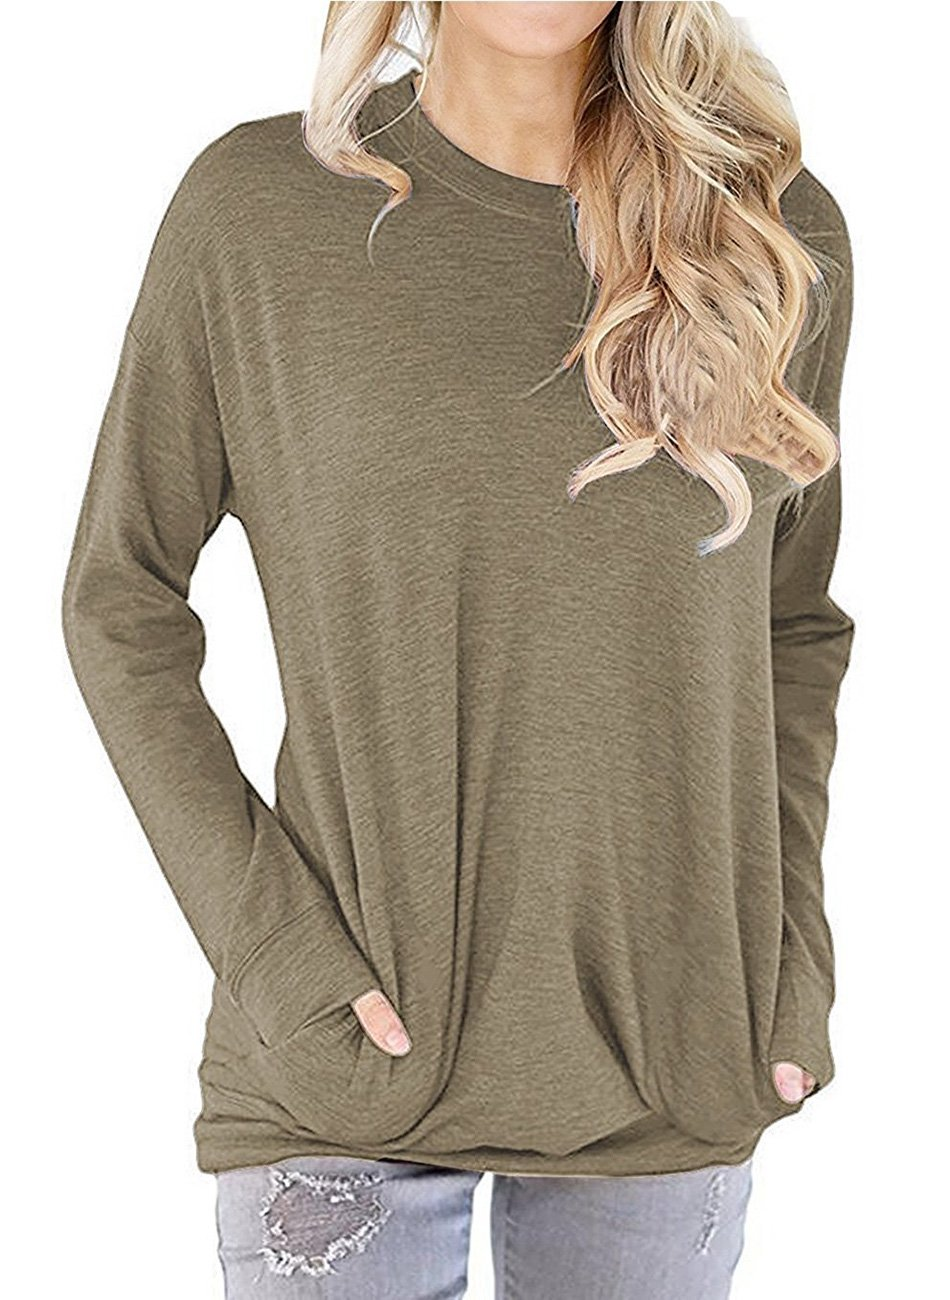 Dutebare Women Casual Long Sleeve Round Neck Sweatshirt Pocket Pullover Loose Tunic Shirts Blouse Tops Khaki XL